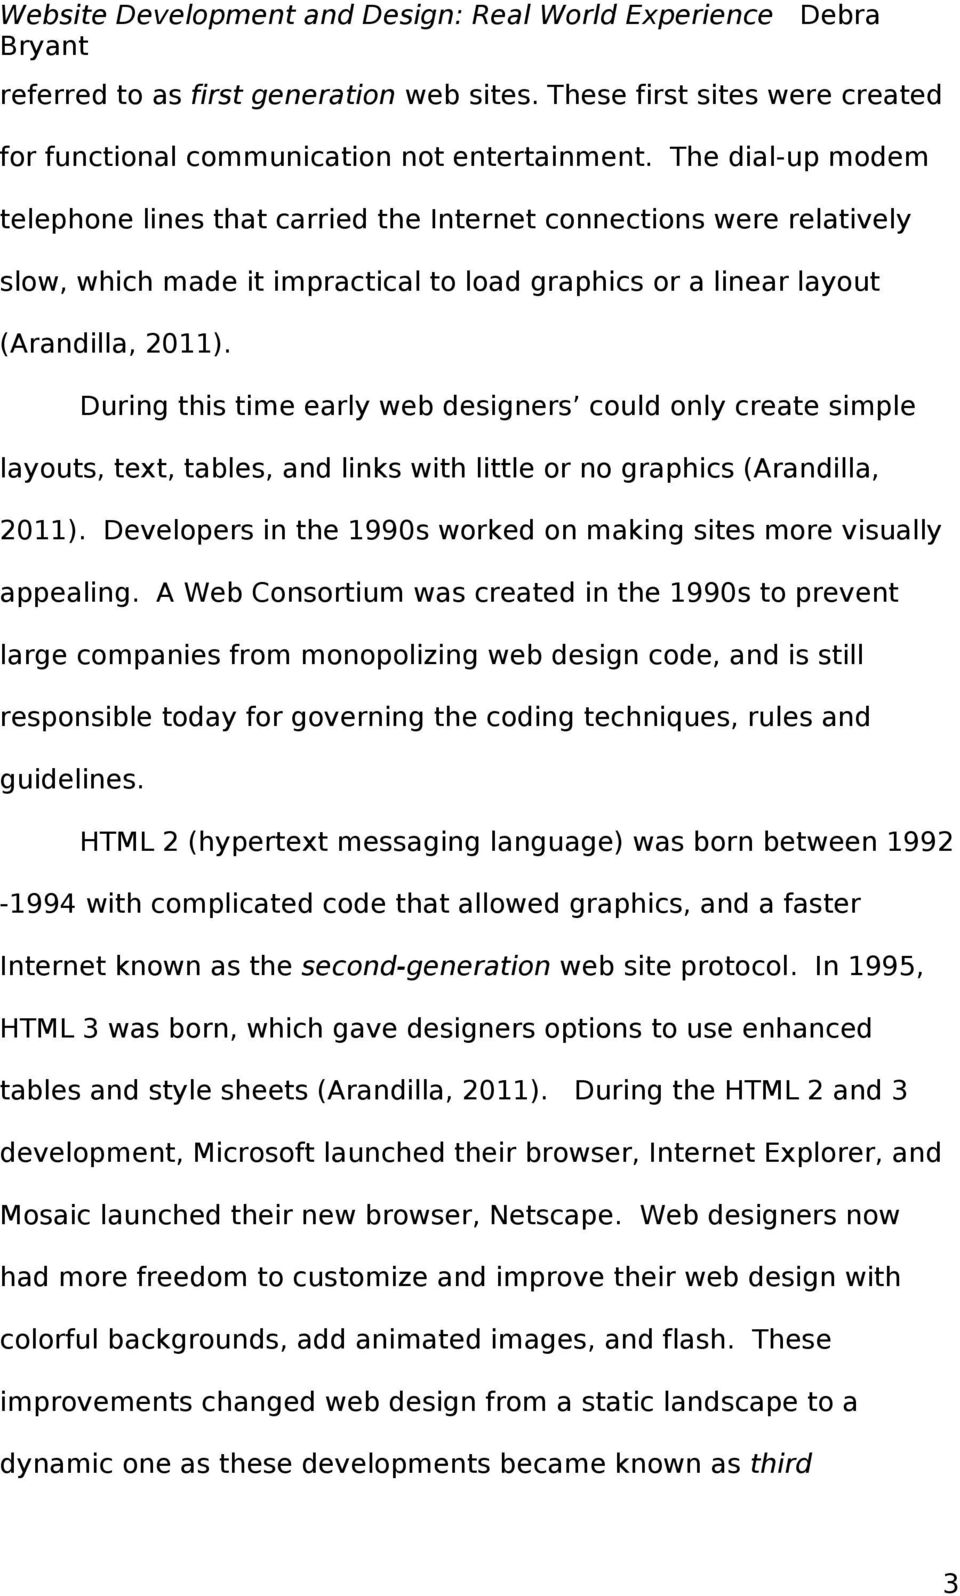 During this time early web designers could only create simple layouts, text, tables, and links with little or no graphics (Arandilla, 2011).